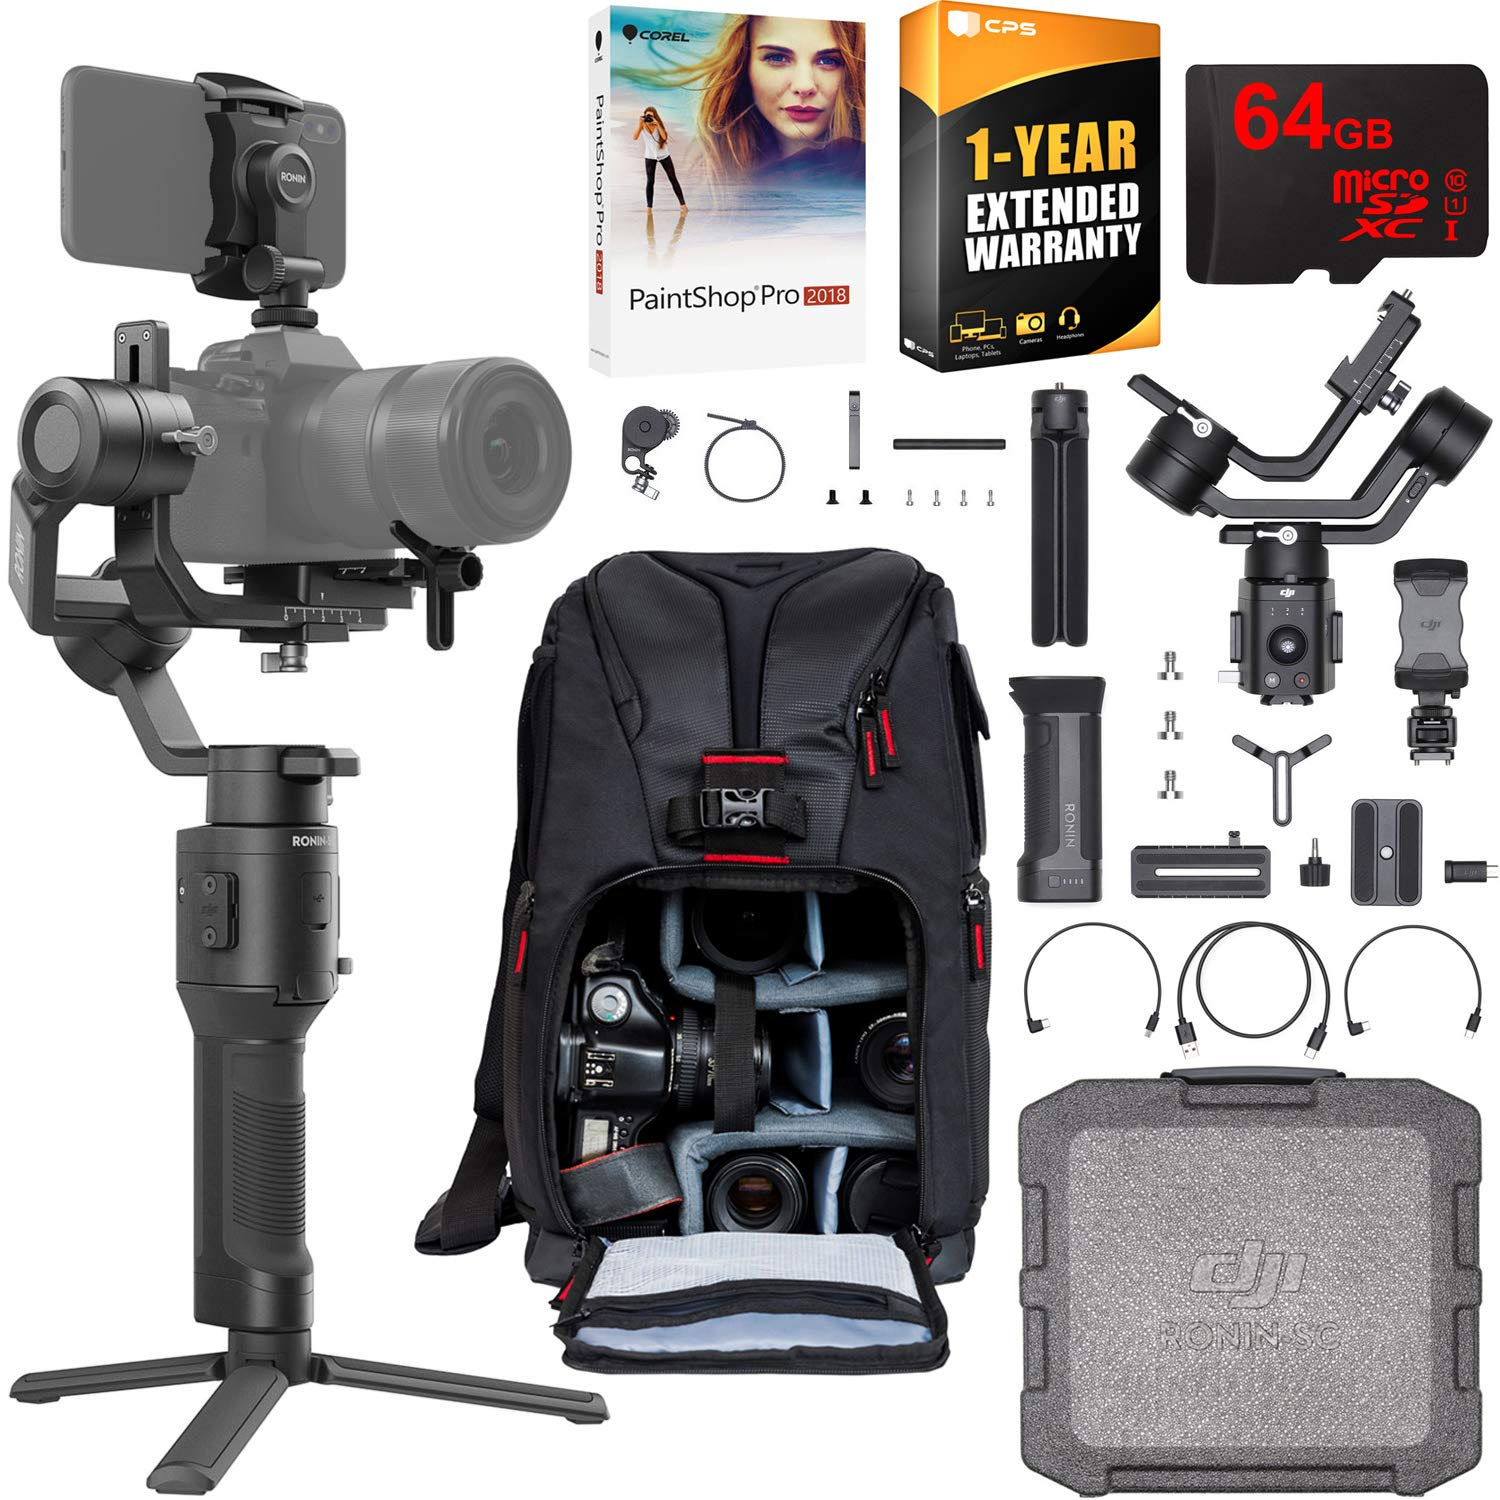 DJI Ronin-SC Pro Combo 3-Axis Gimbal Stabilizer for Mirrorless Cameras Pro Creative Bundle with Deco Photo Backpack + 64GB High Speed Card + Corel Paintshop Pro Software + 1 Year Warranty Extension by DJI